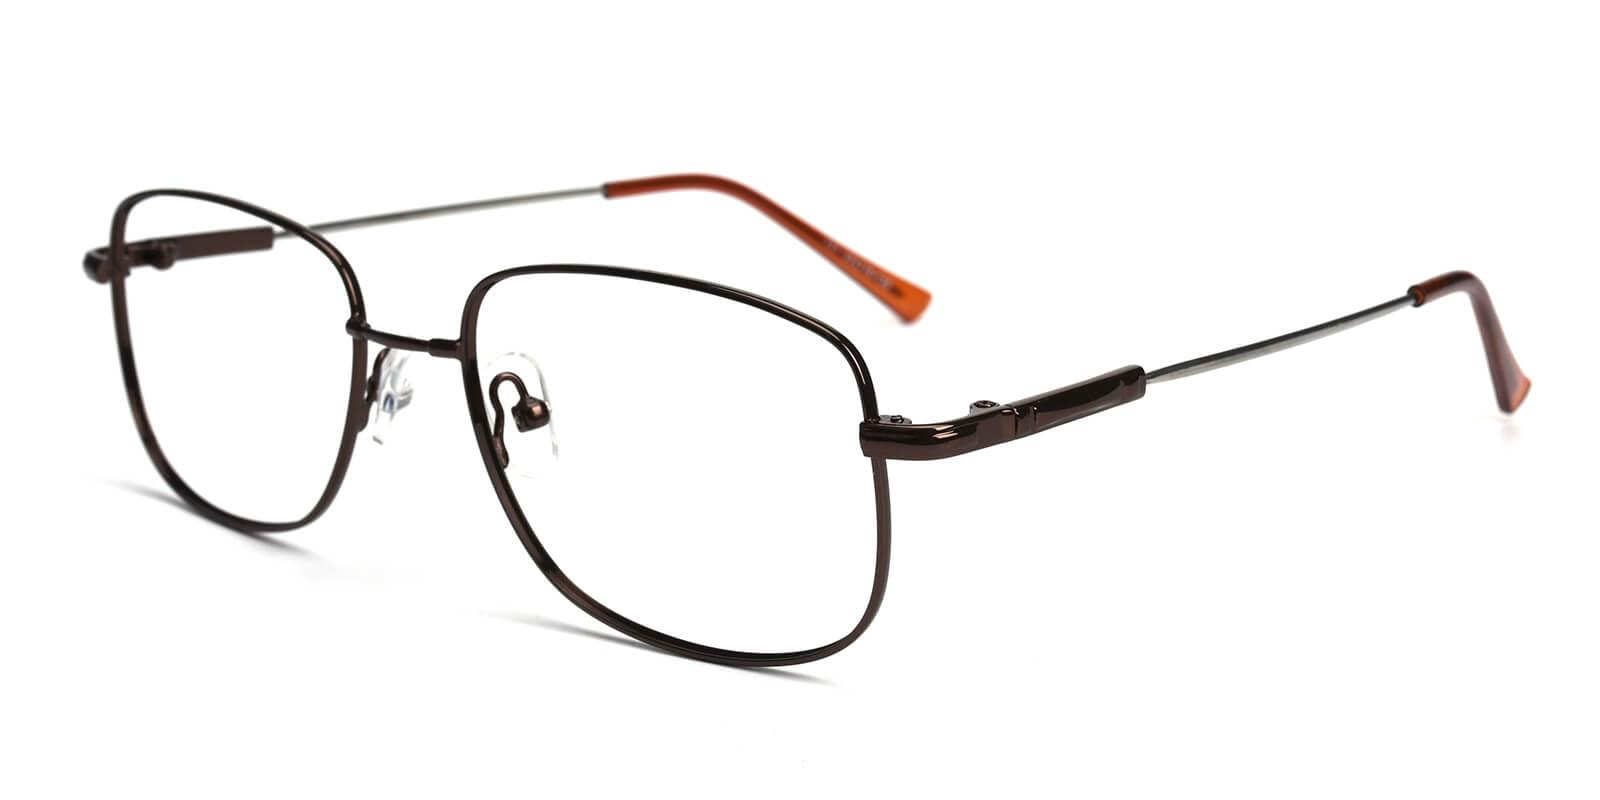 Twist-Brown-Square-Metal-Eyeglasses-additional1